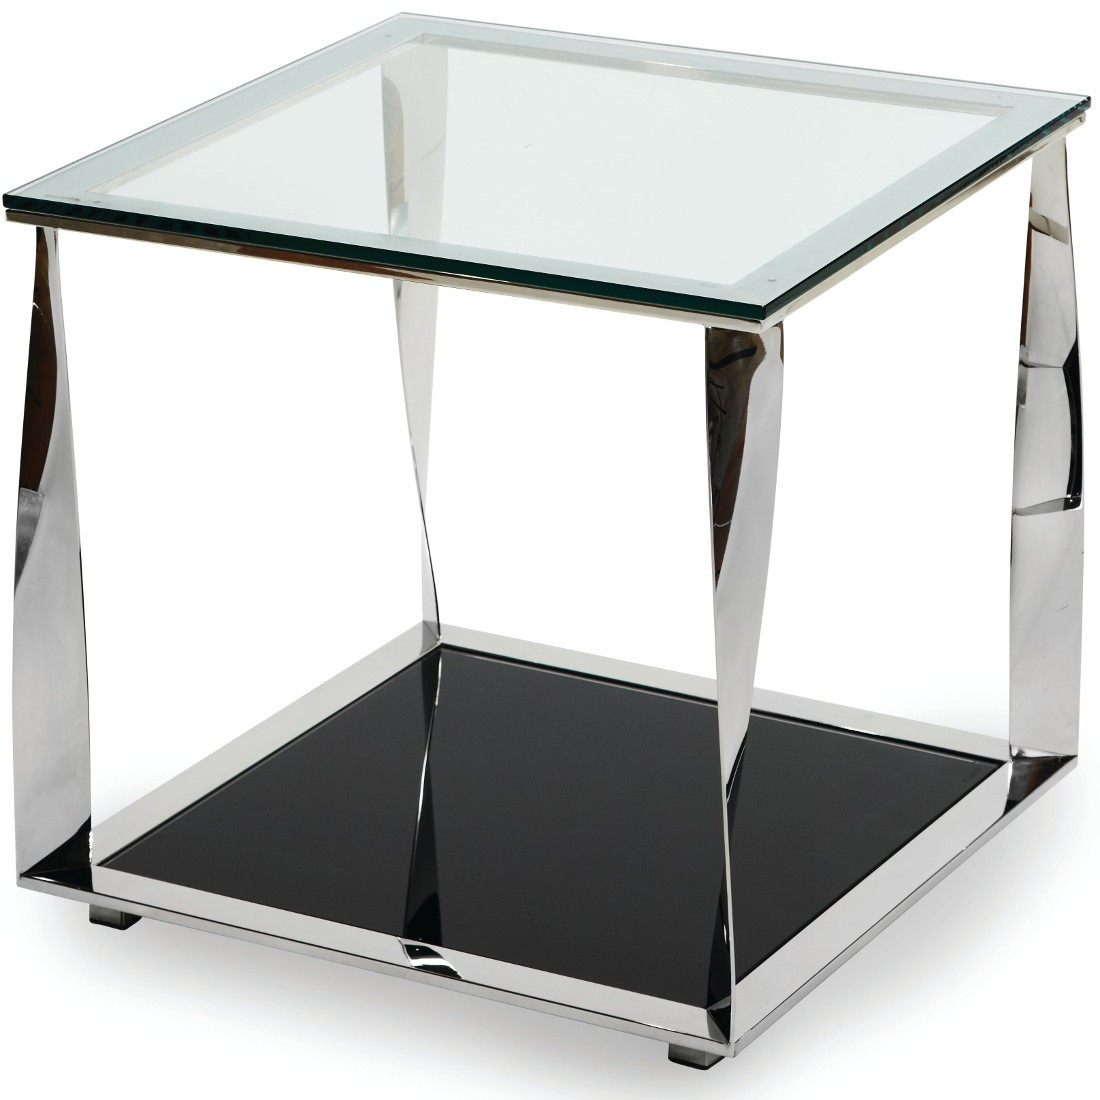 aico discoveries accent square glass table local furniture act cntr west elm wood side coffee and set lucite bedside round cloth dining pedestal base only dorm sets rattan